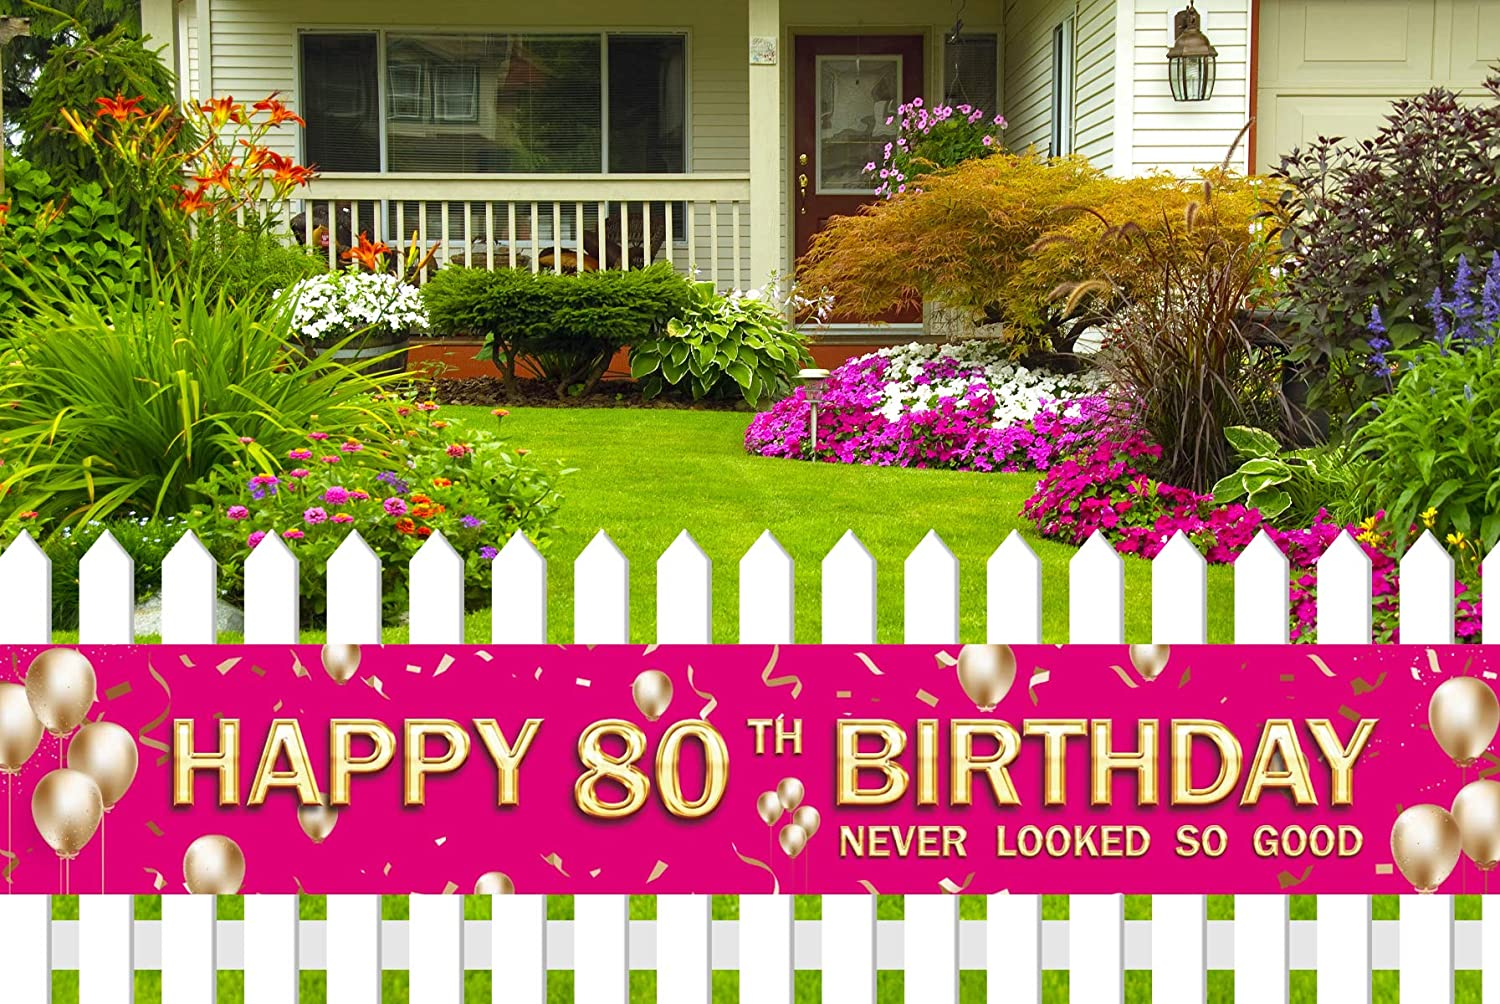 Large 80th Birthday Party Banner, 80th Birthday Party Supplies Decorations for Both Outdoor Indoor (9.8 x 1.6ft) (Pink)